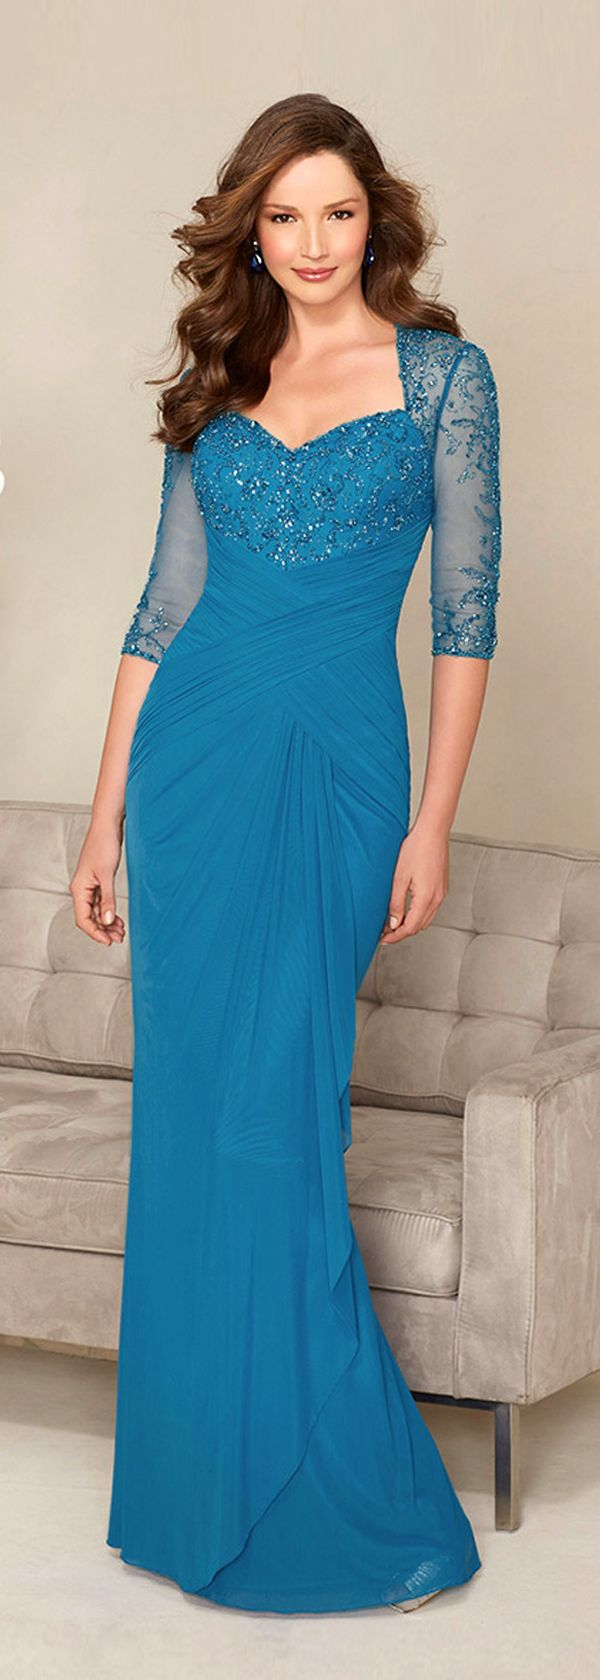 Chic Chiffon Queen Anne Neckline Floor-length Mother of the Bride ...